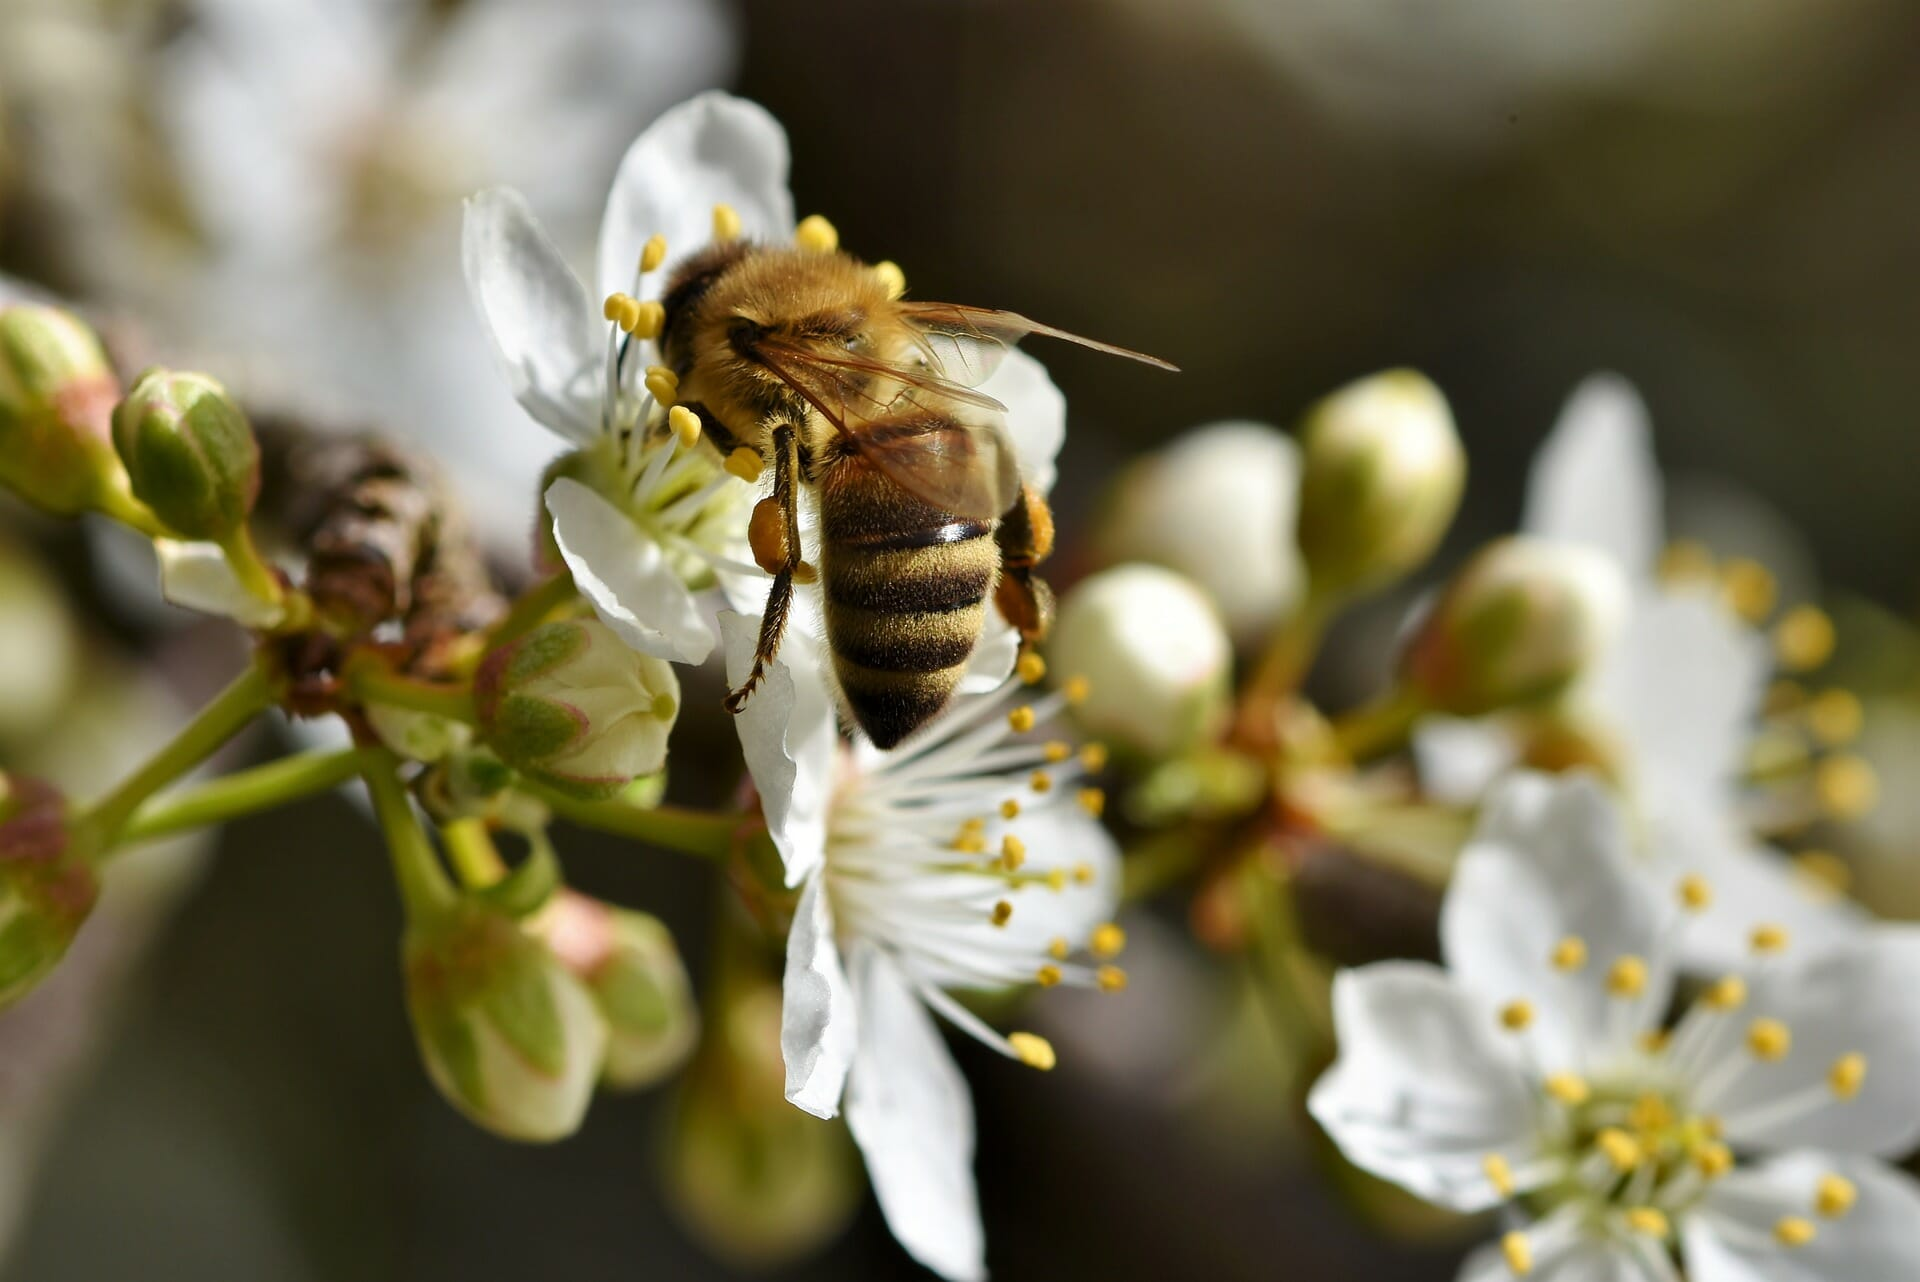 Bee pollinating a flower in nature